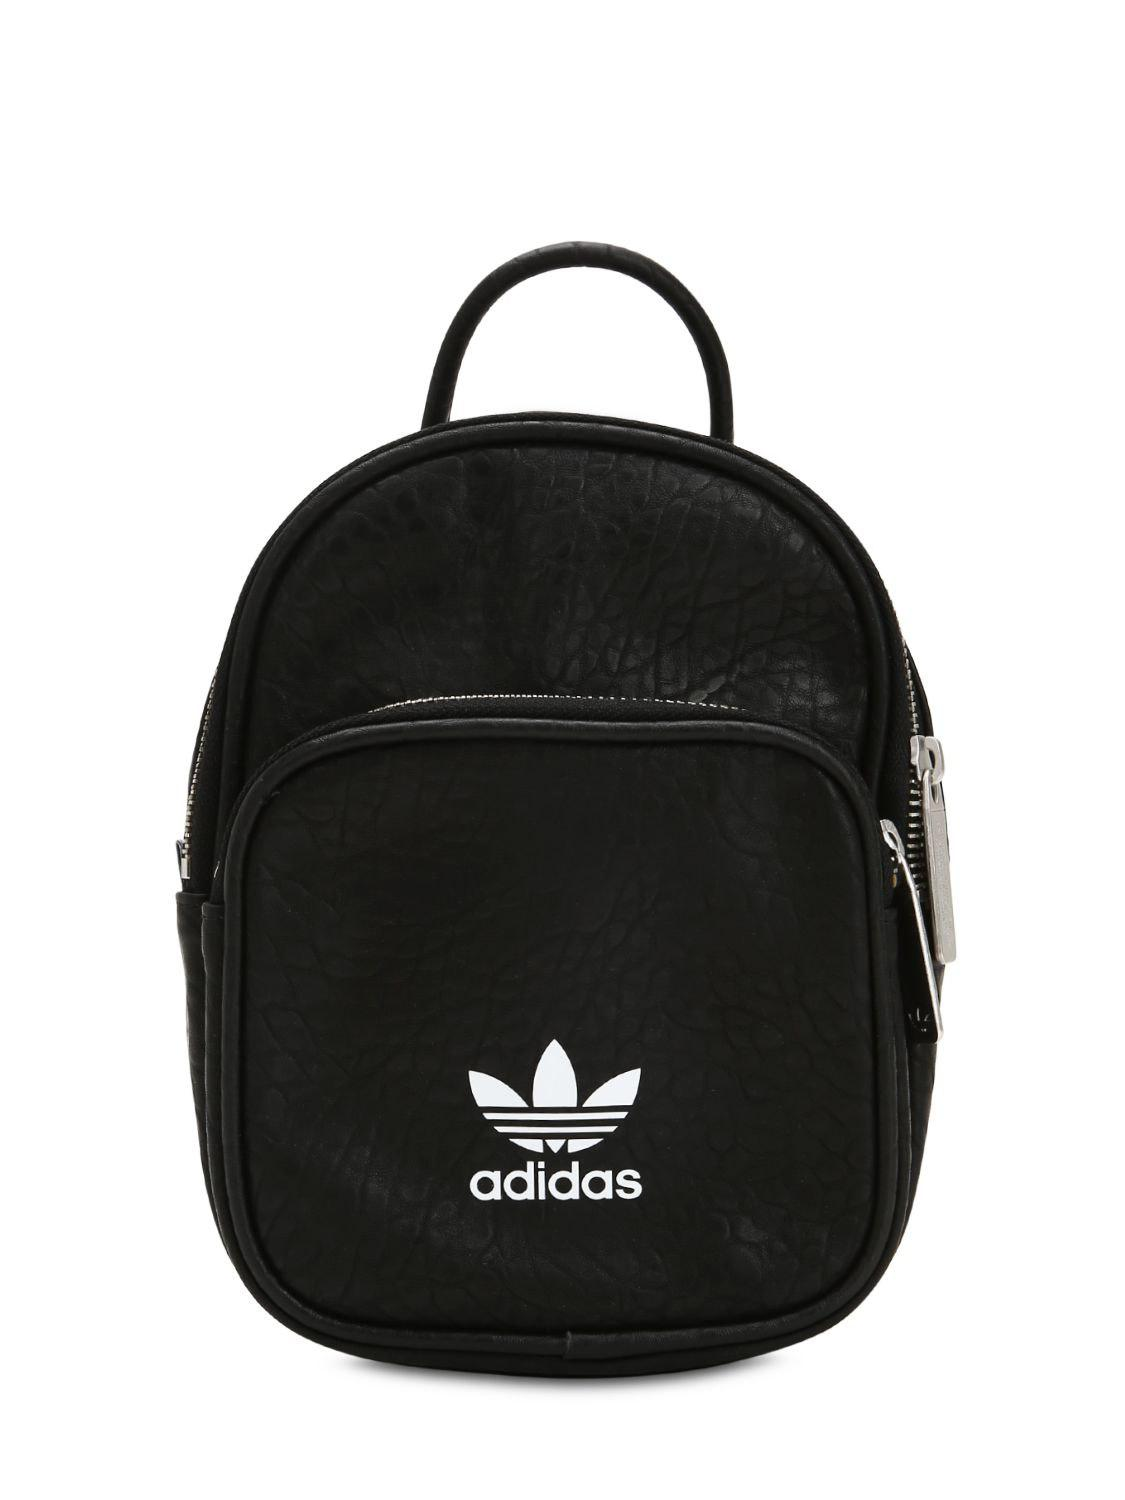 0e51819ce97 adidas Originals Leather Look Mini Backpack In Black in Black - Save ...